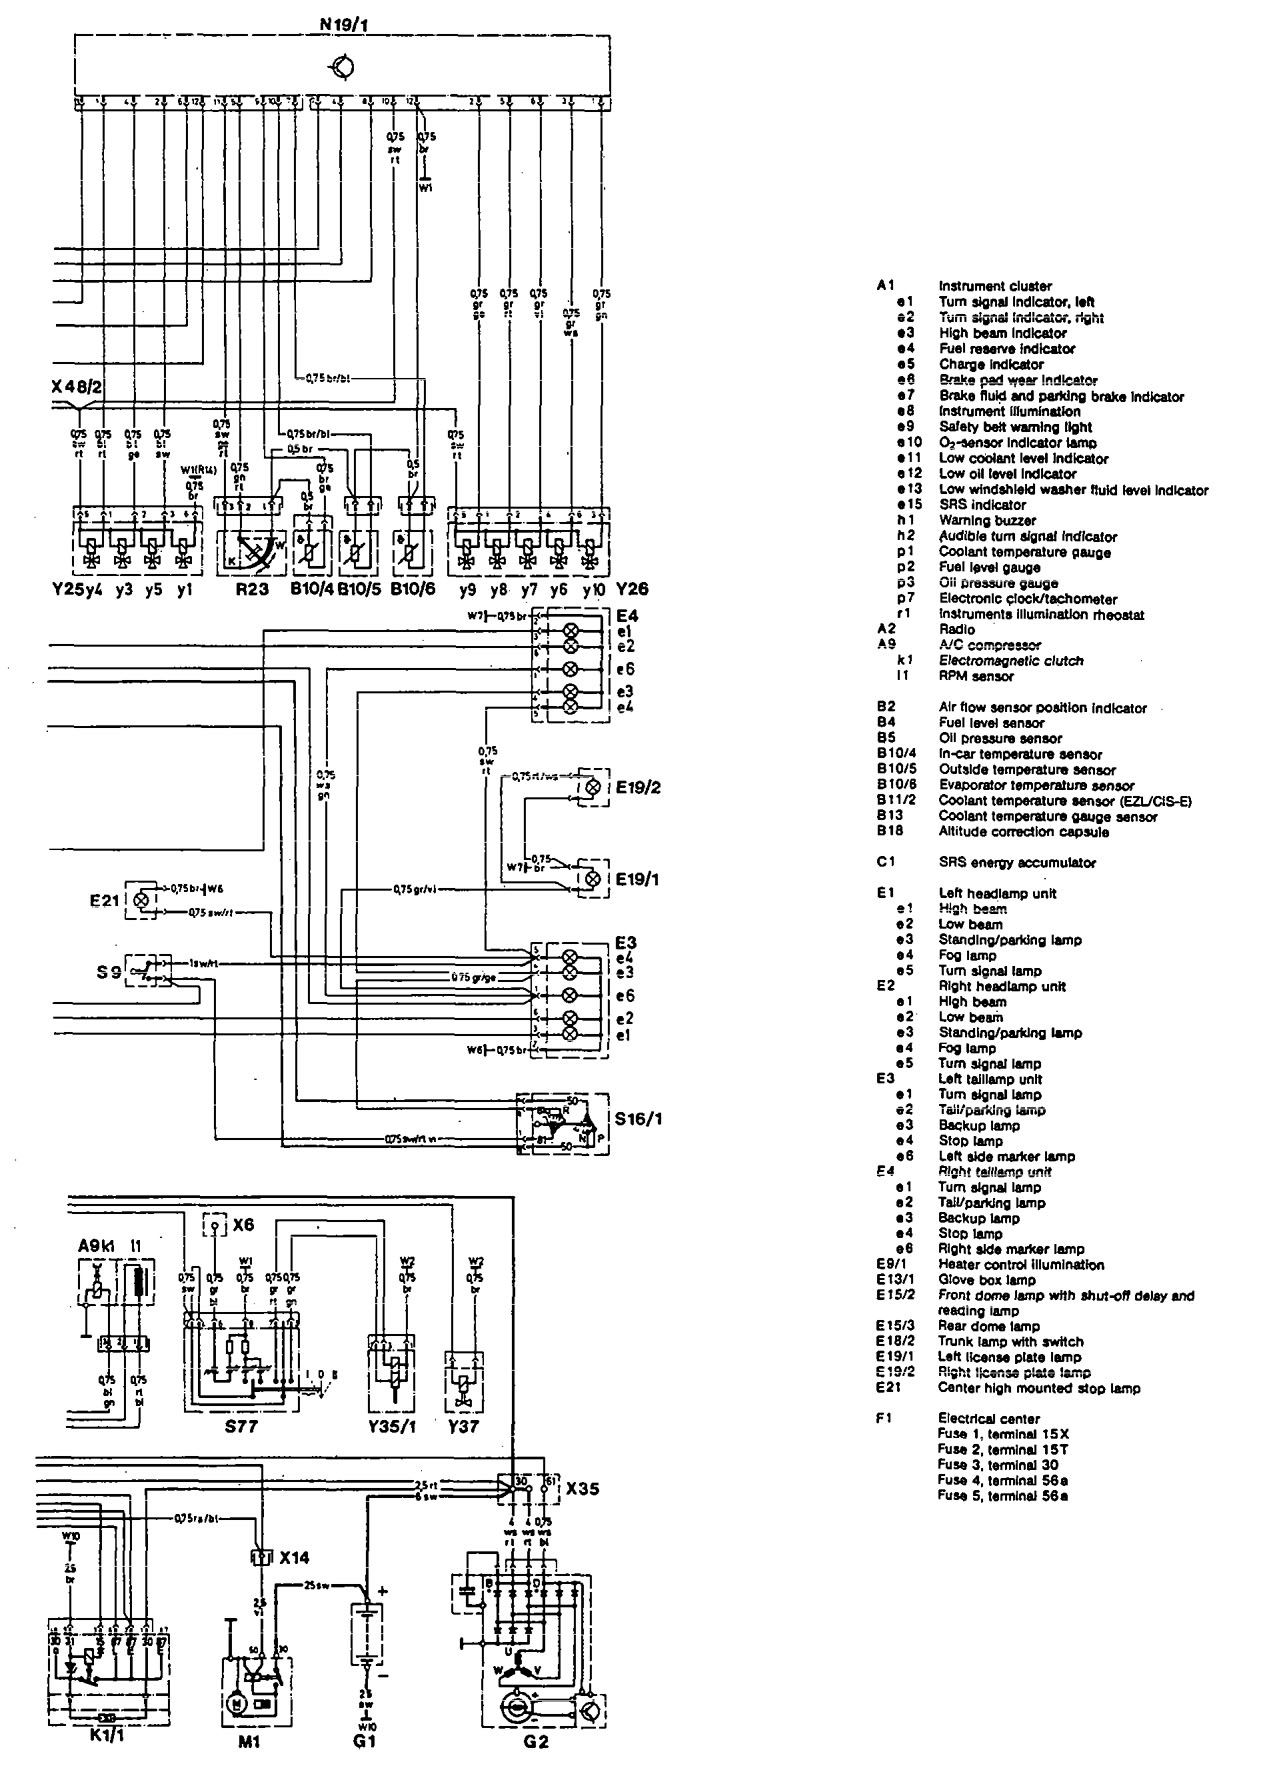 Mercede 190e Fuse Box Diagram